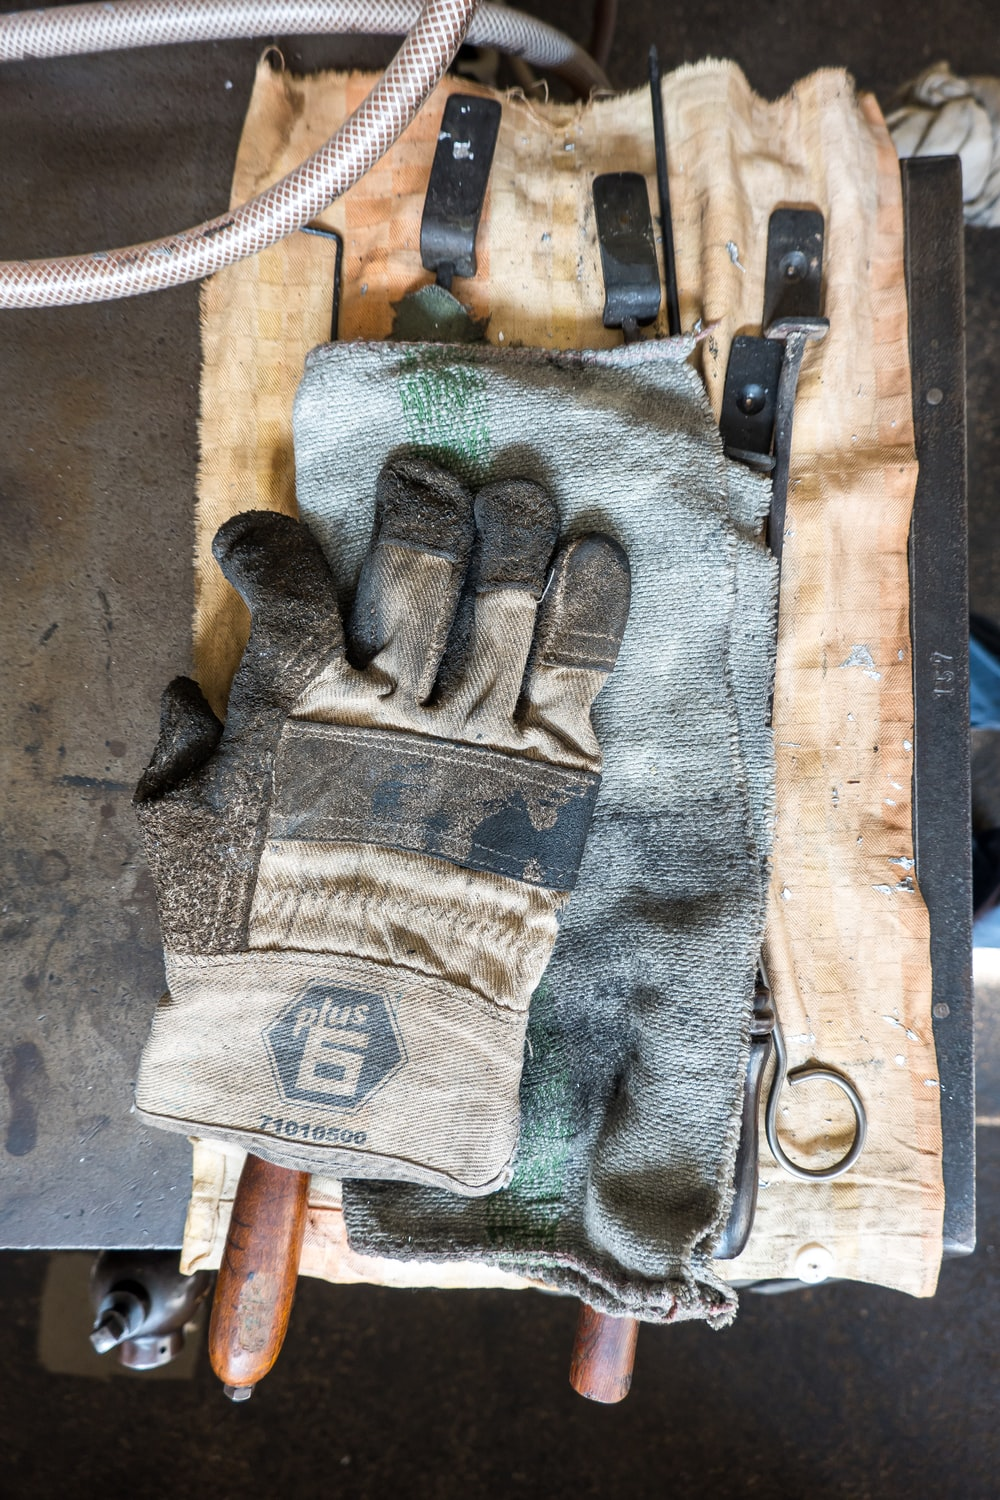 white and gray gloves on towel